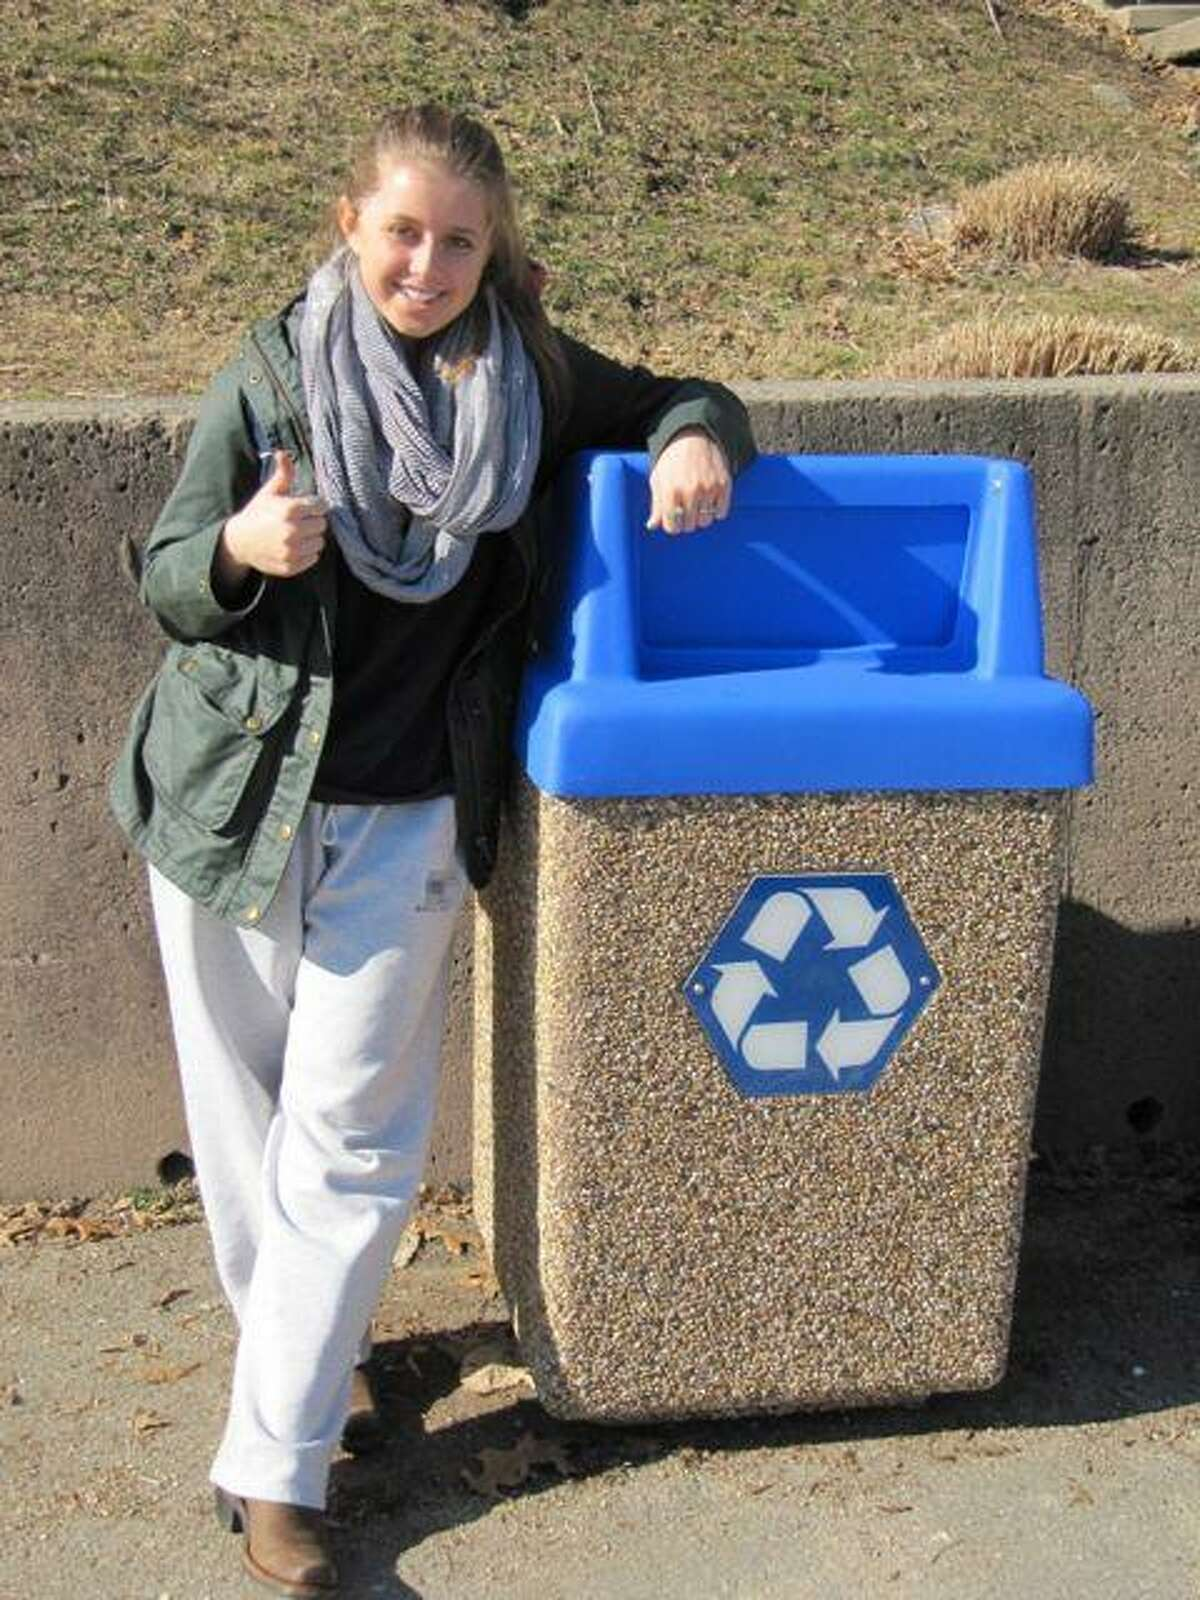 Hopkins student Sonia Lombroso with an outdoor recycling bin. Contributed photo.